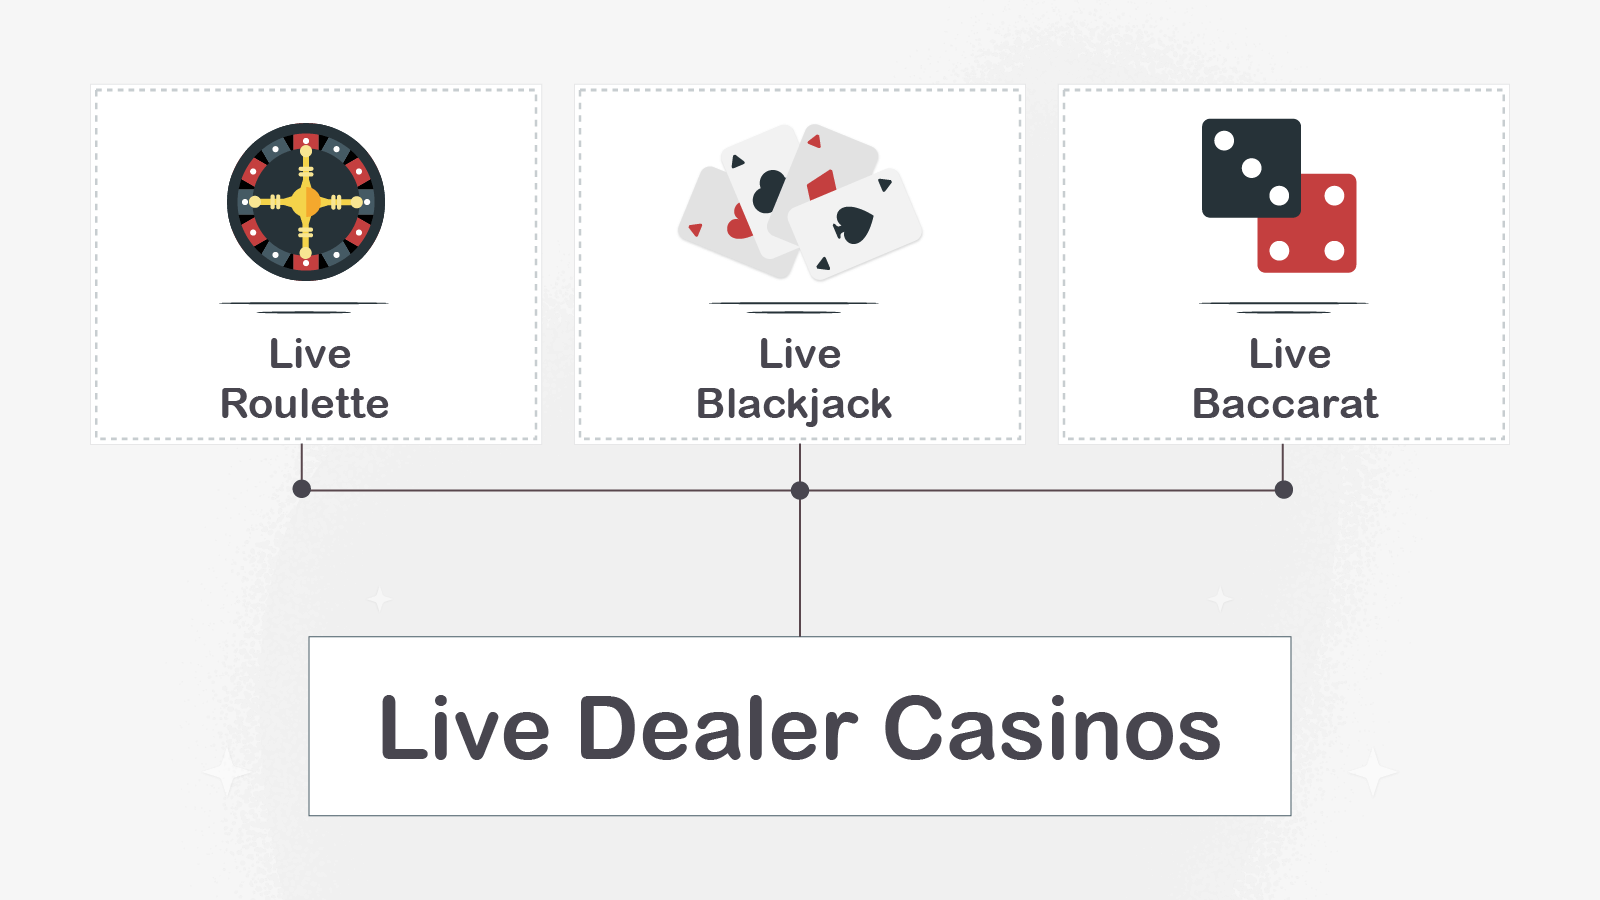 What Games are there in Live Dealer Casinos